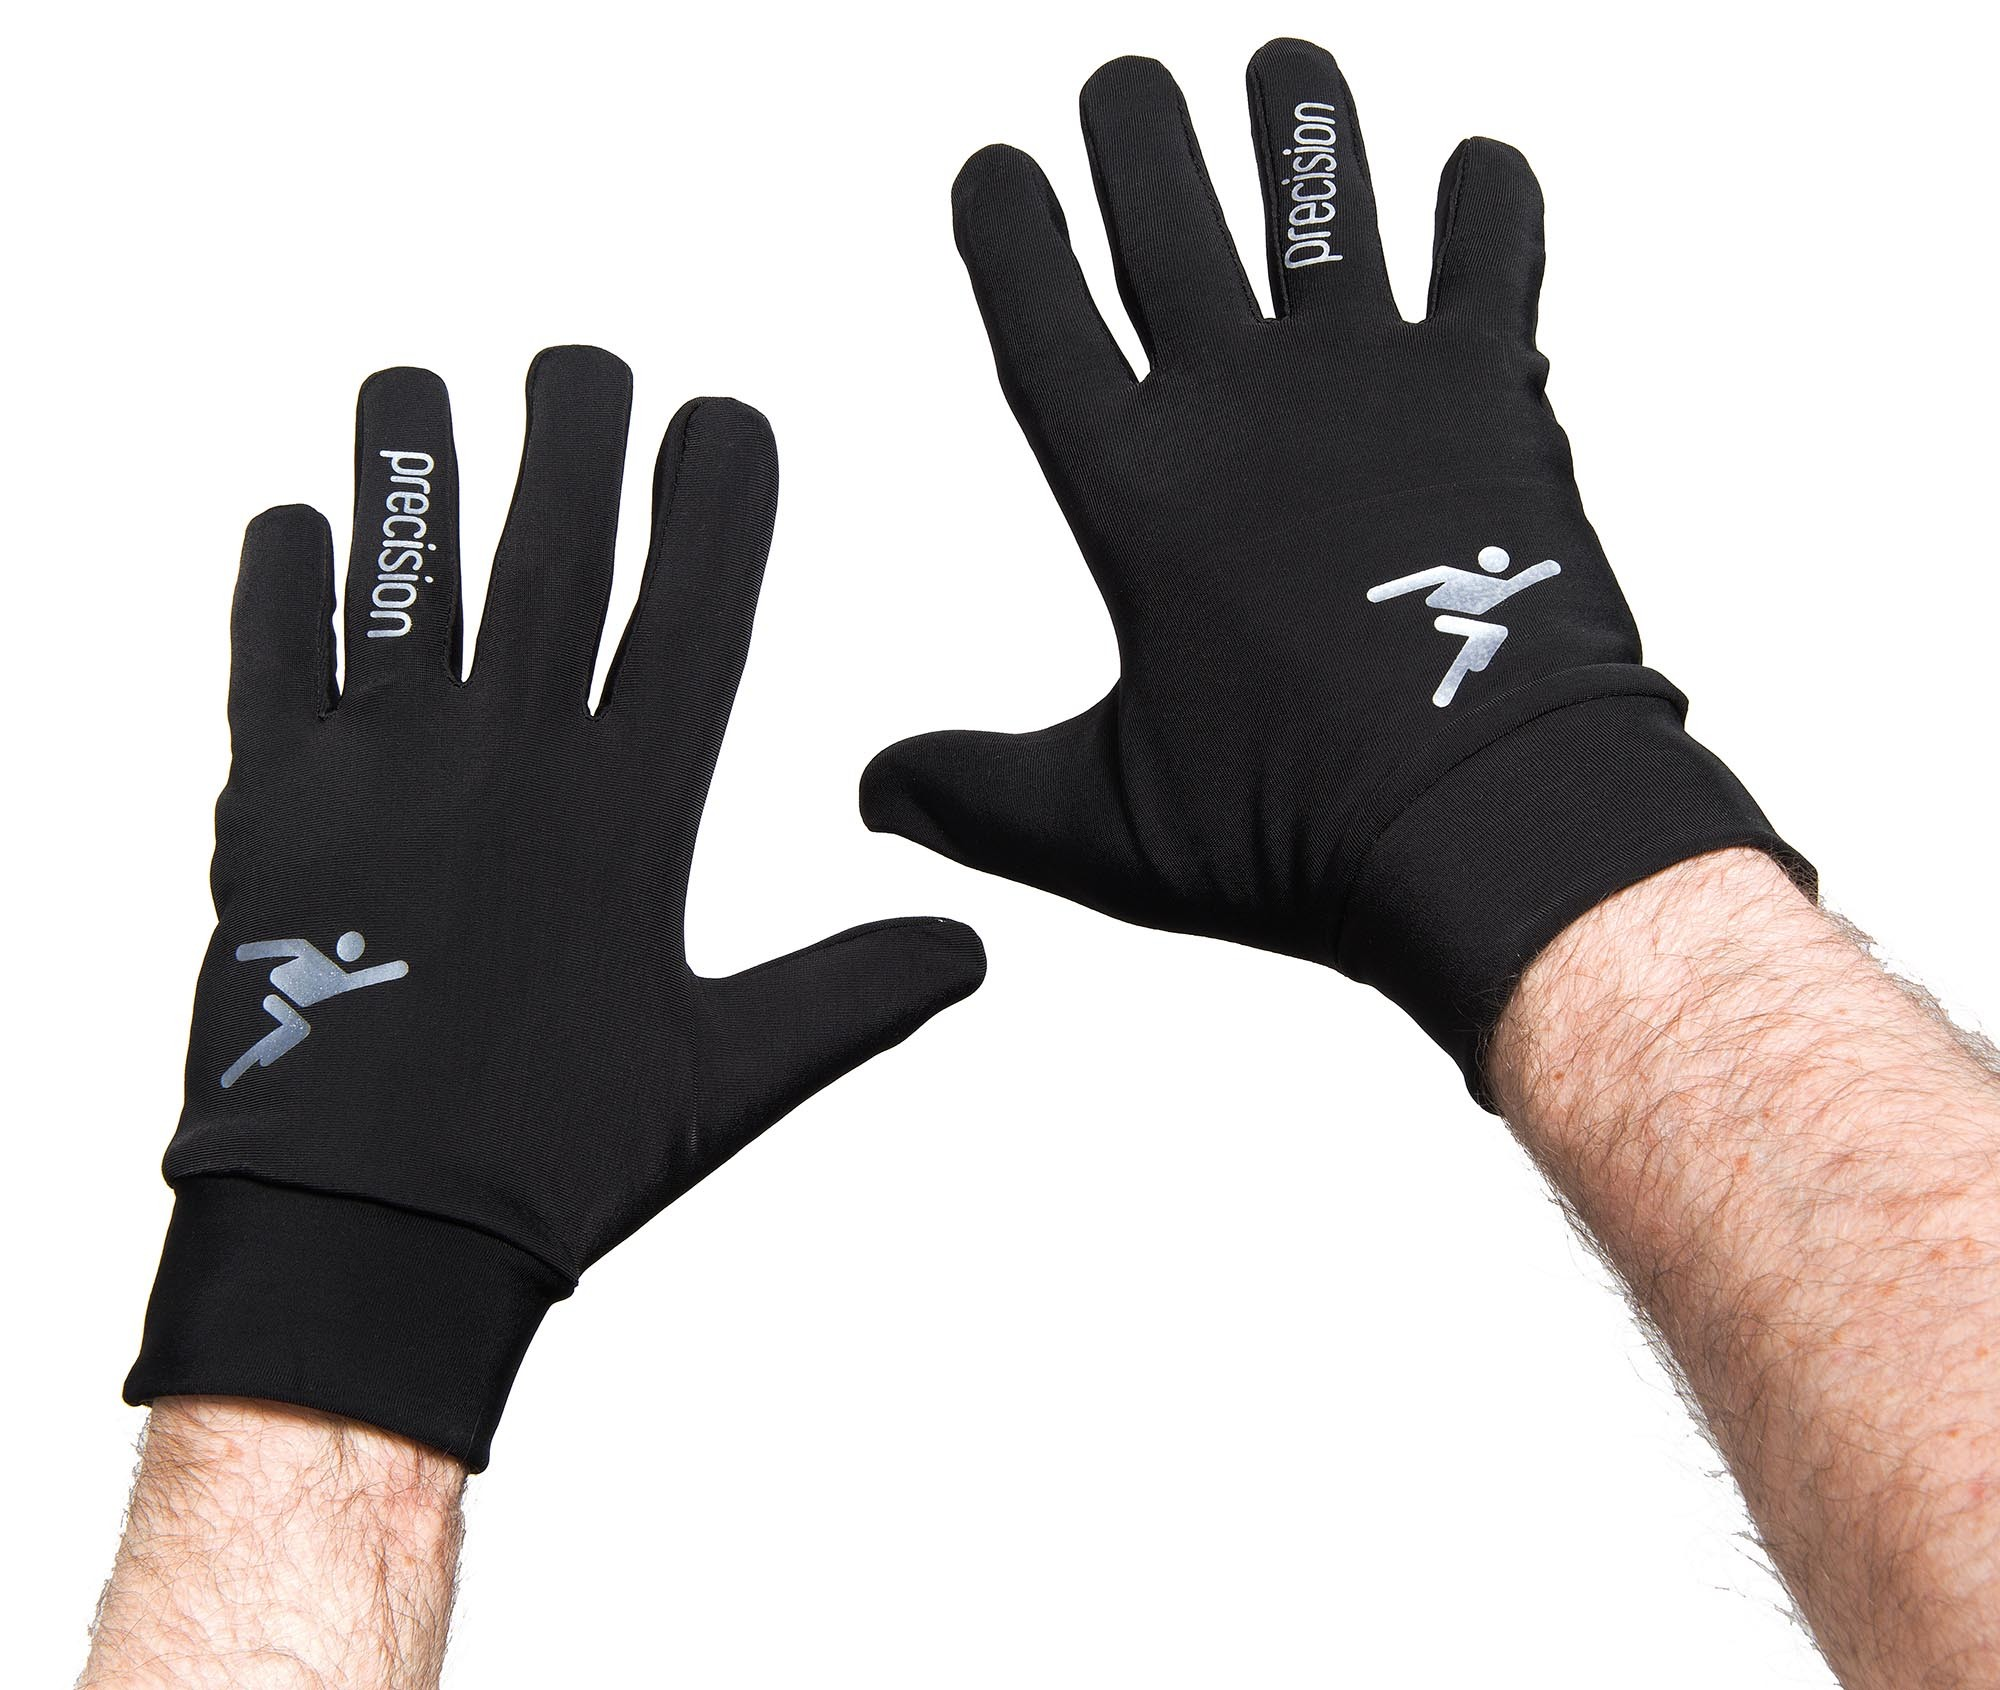 Precision Players Gloves Training Soccer Football